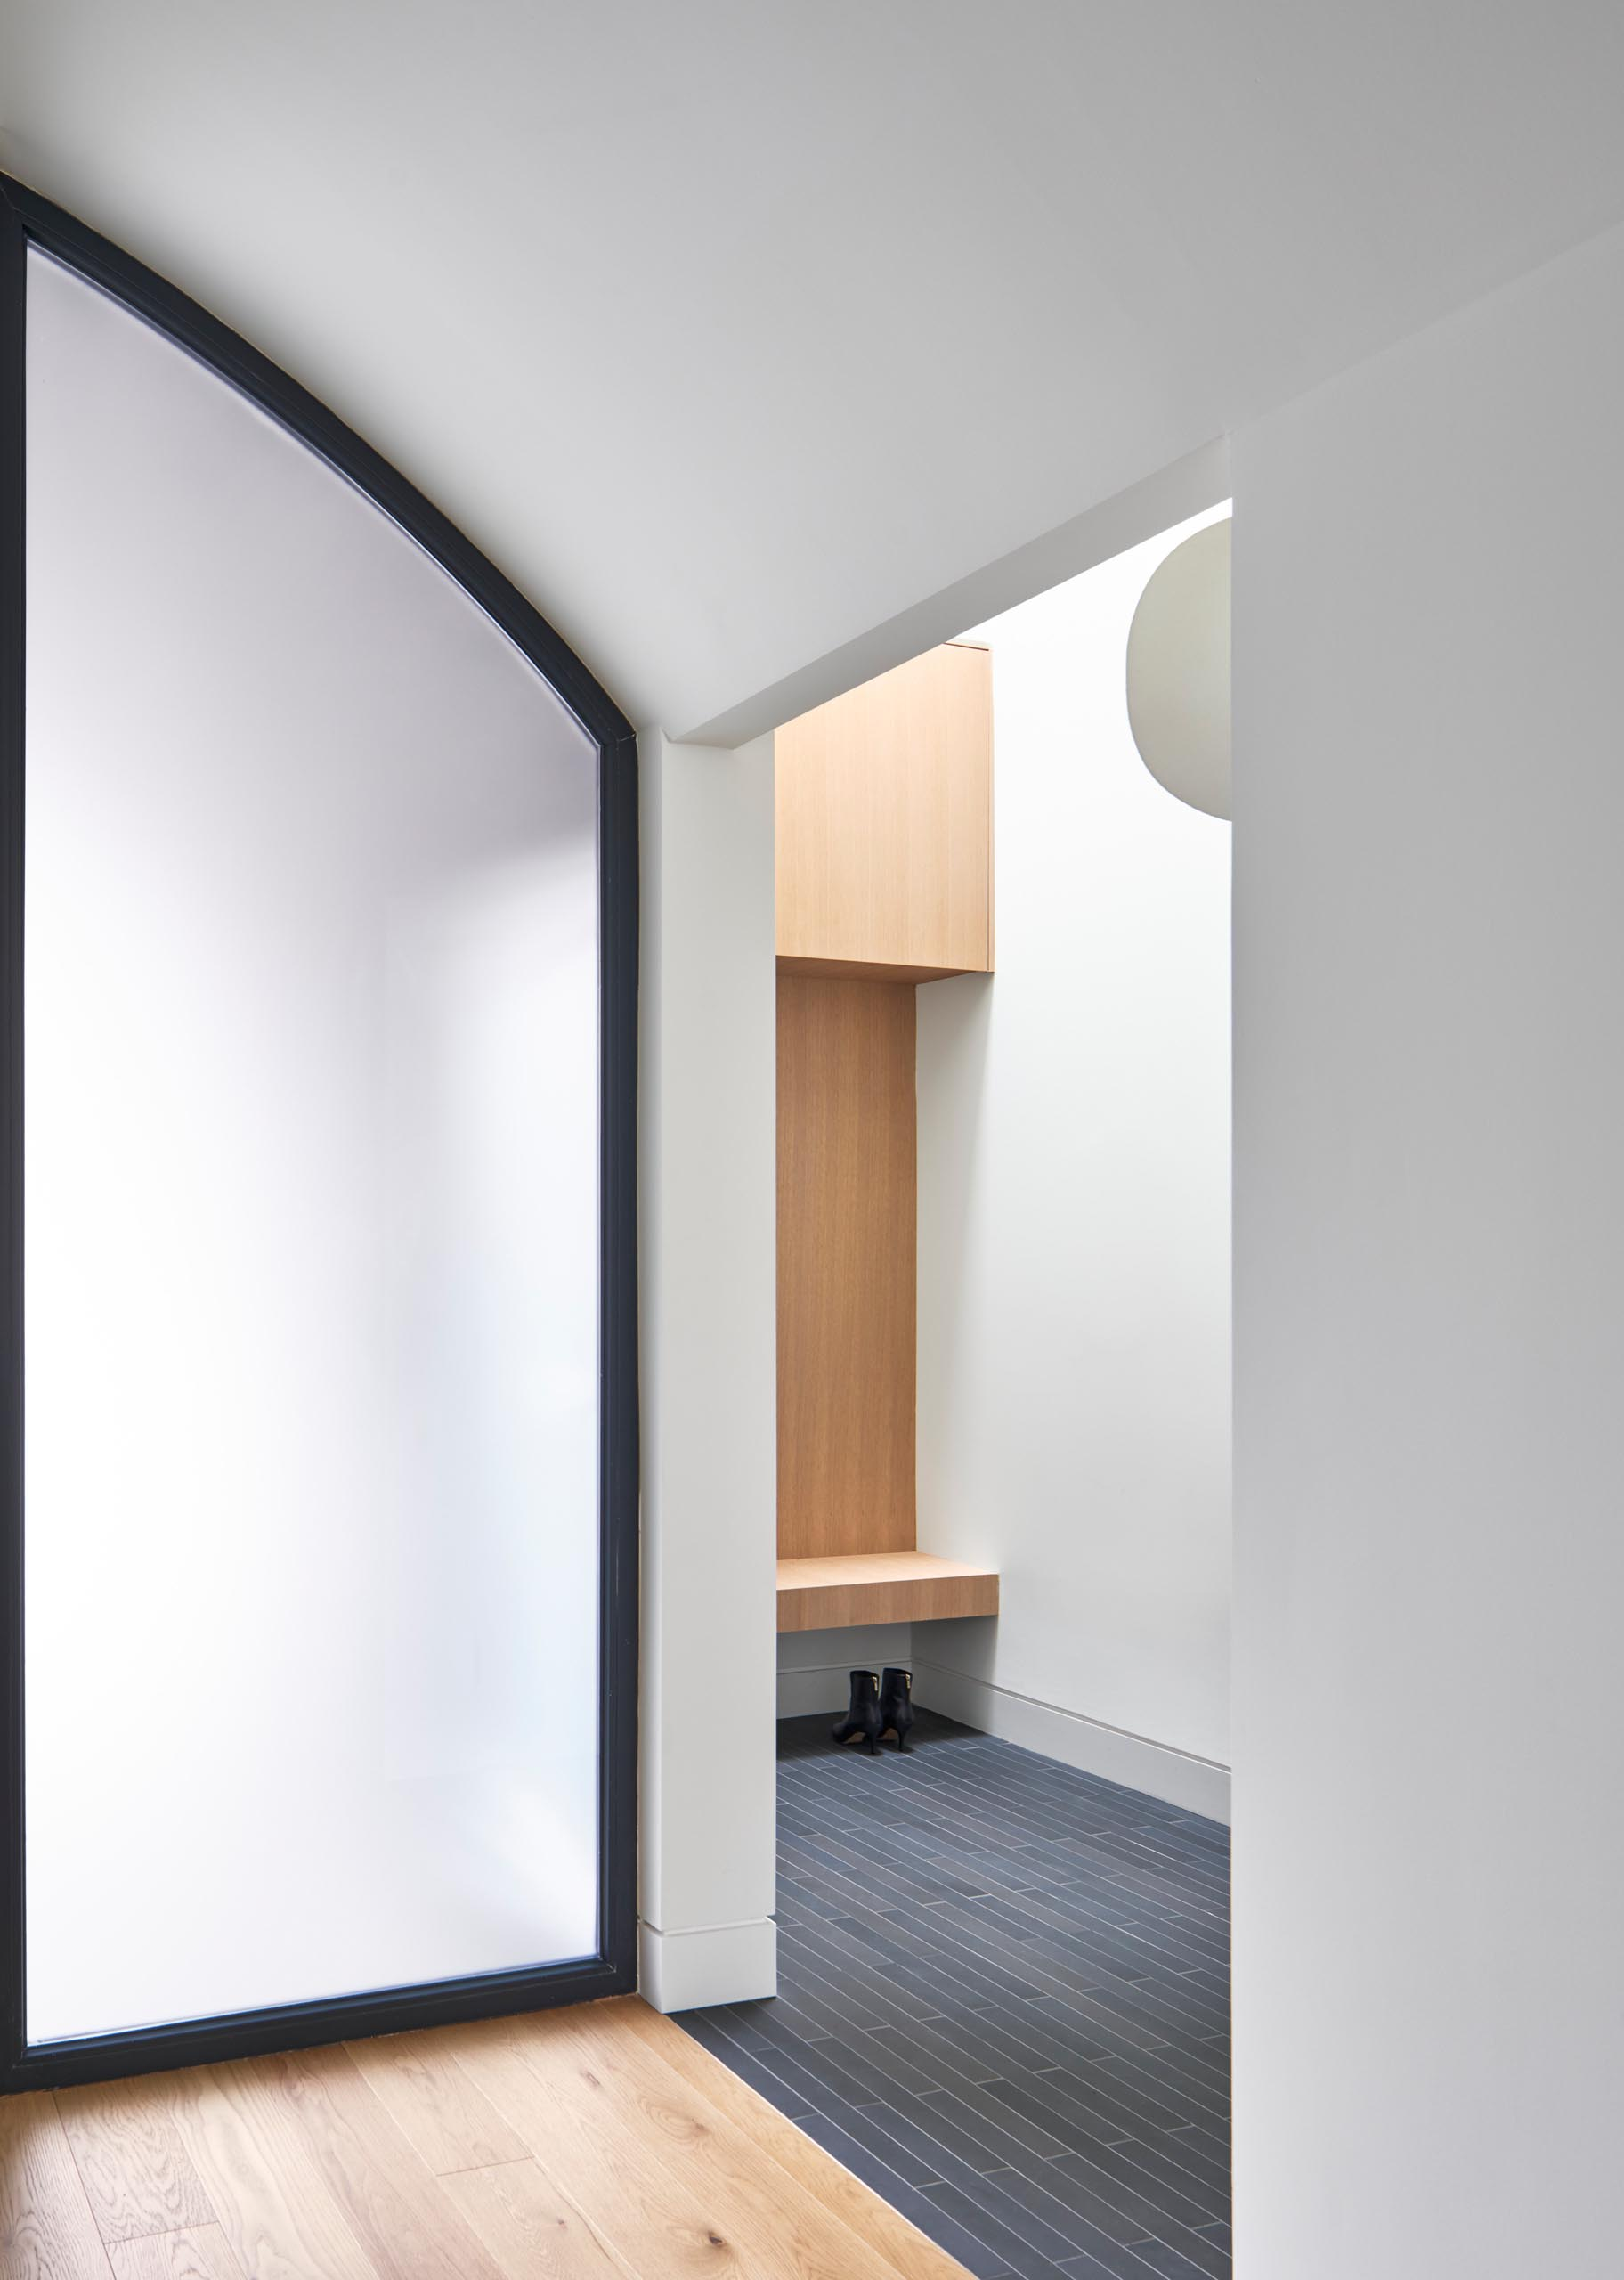 Inside this modern home, there's a small entryway with a bench for taking off shoes and coats.